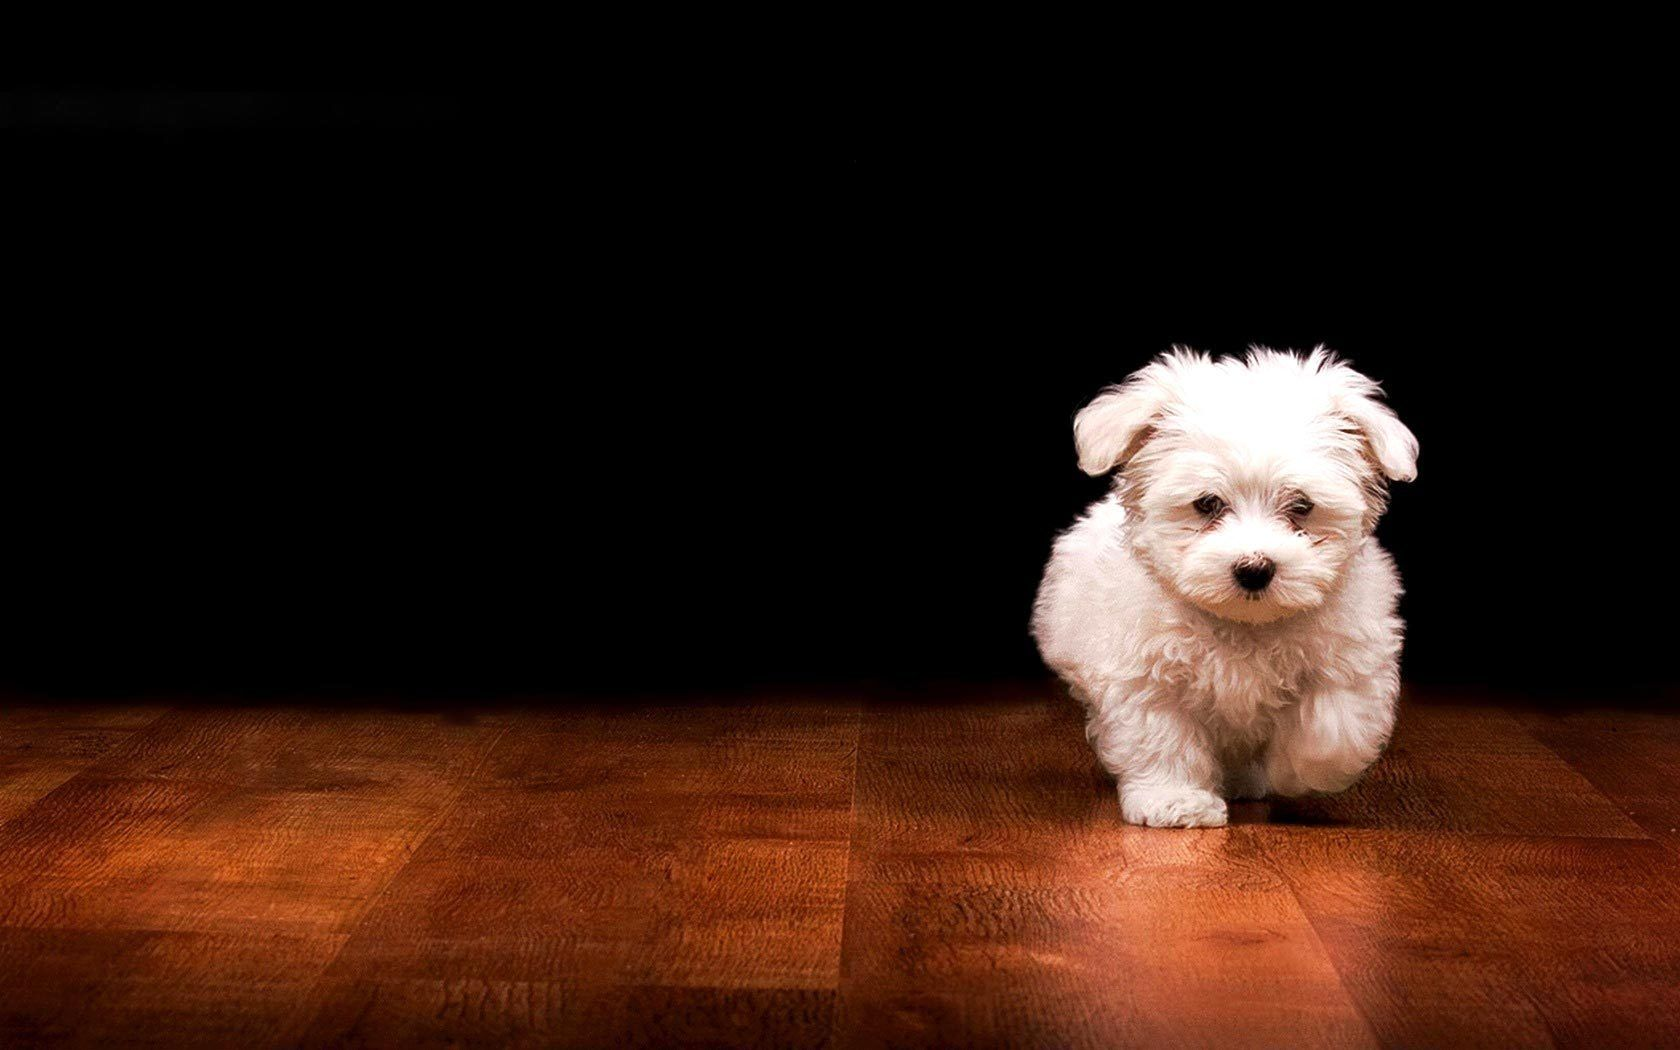 The Absolute Cutest Dog Ever Desktop Wallpaper 1680 1050 R Wallpapers Cute Dog Wallpaper Puppy Backgrounds Cute White Puppies